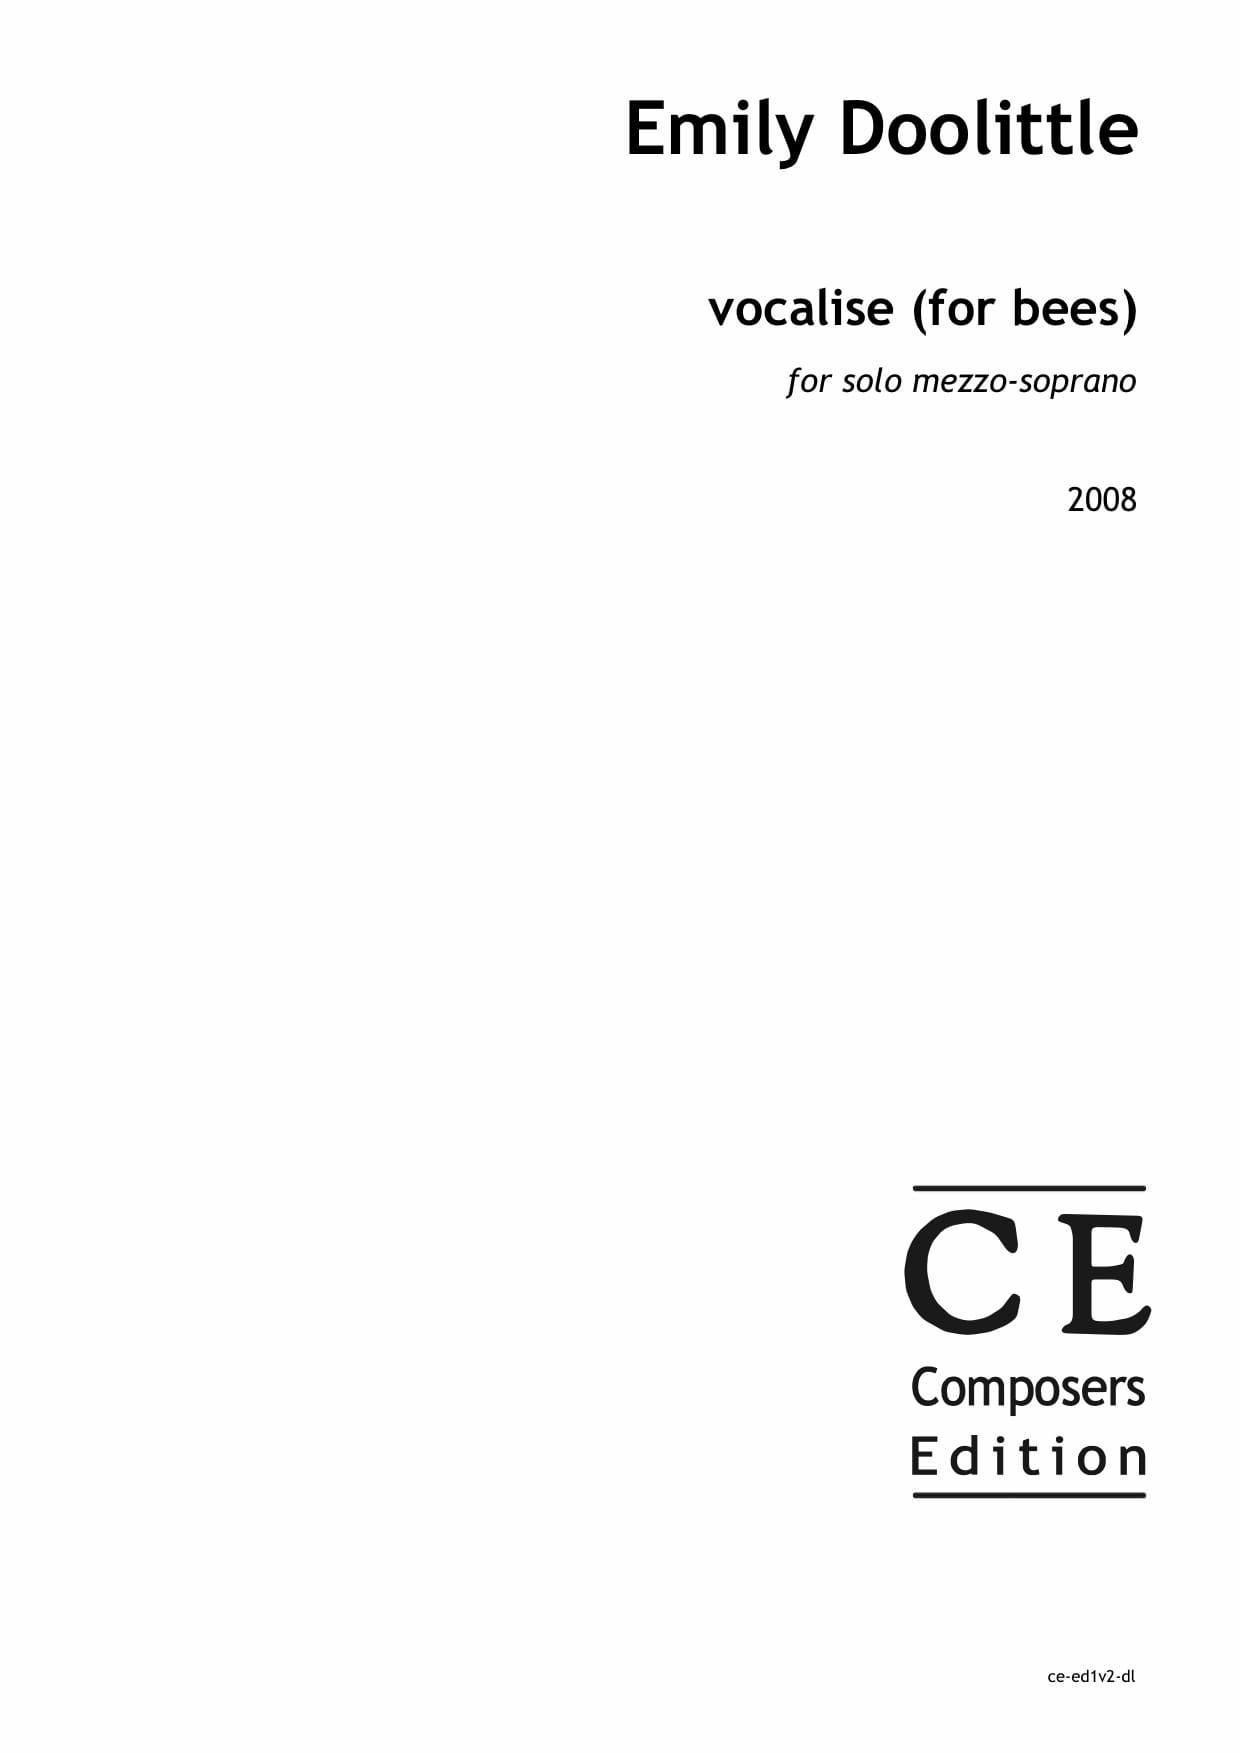 Emily Doolittle: vocalise (for bees) for solo mezzo-soprano